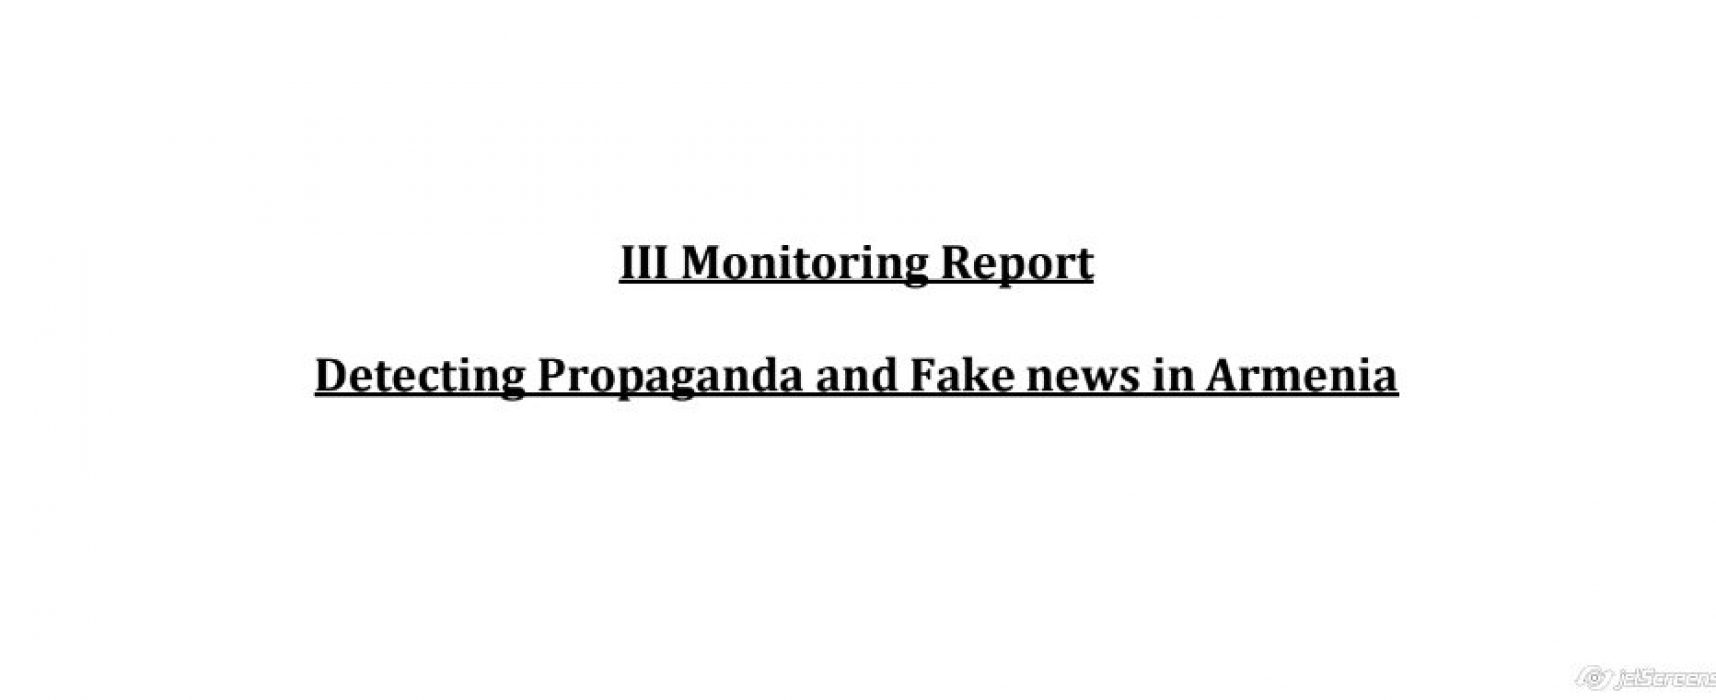 Armenia: Detecting propaganda and fake news – III monitoring report